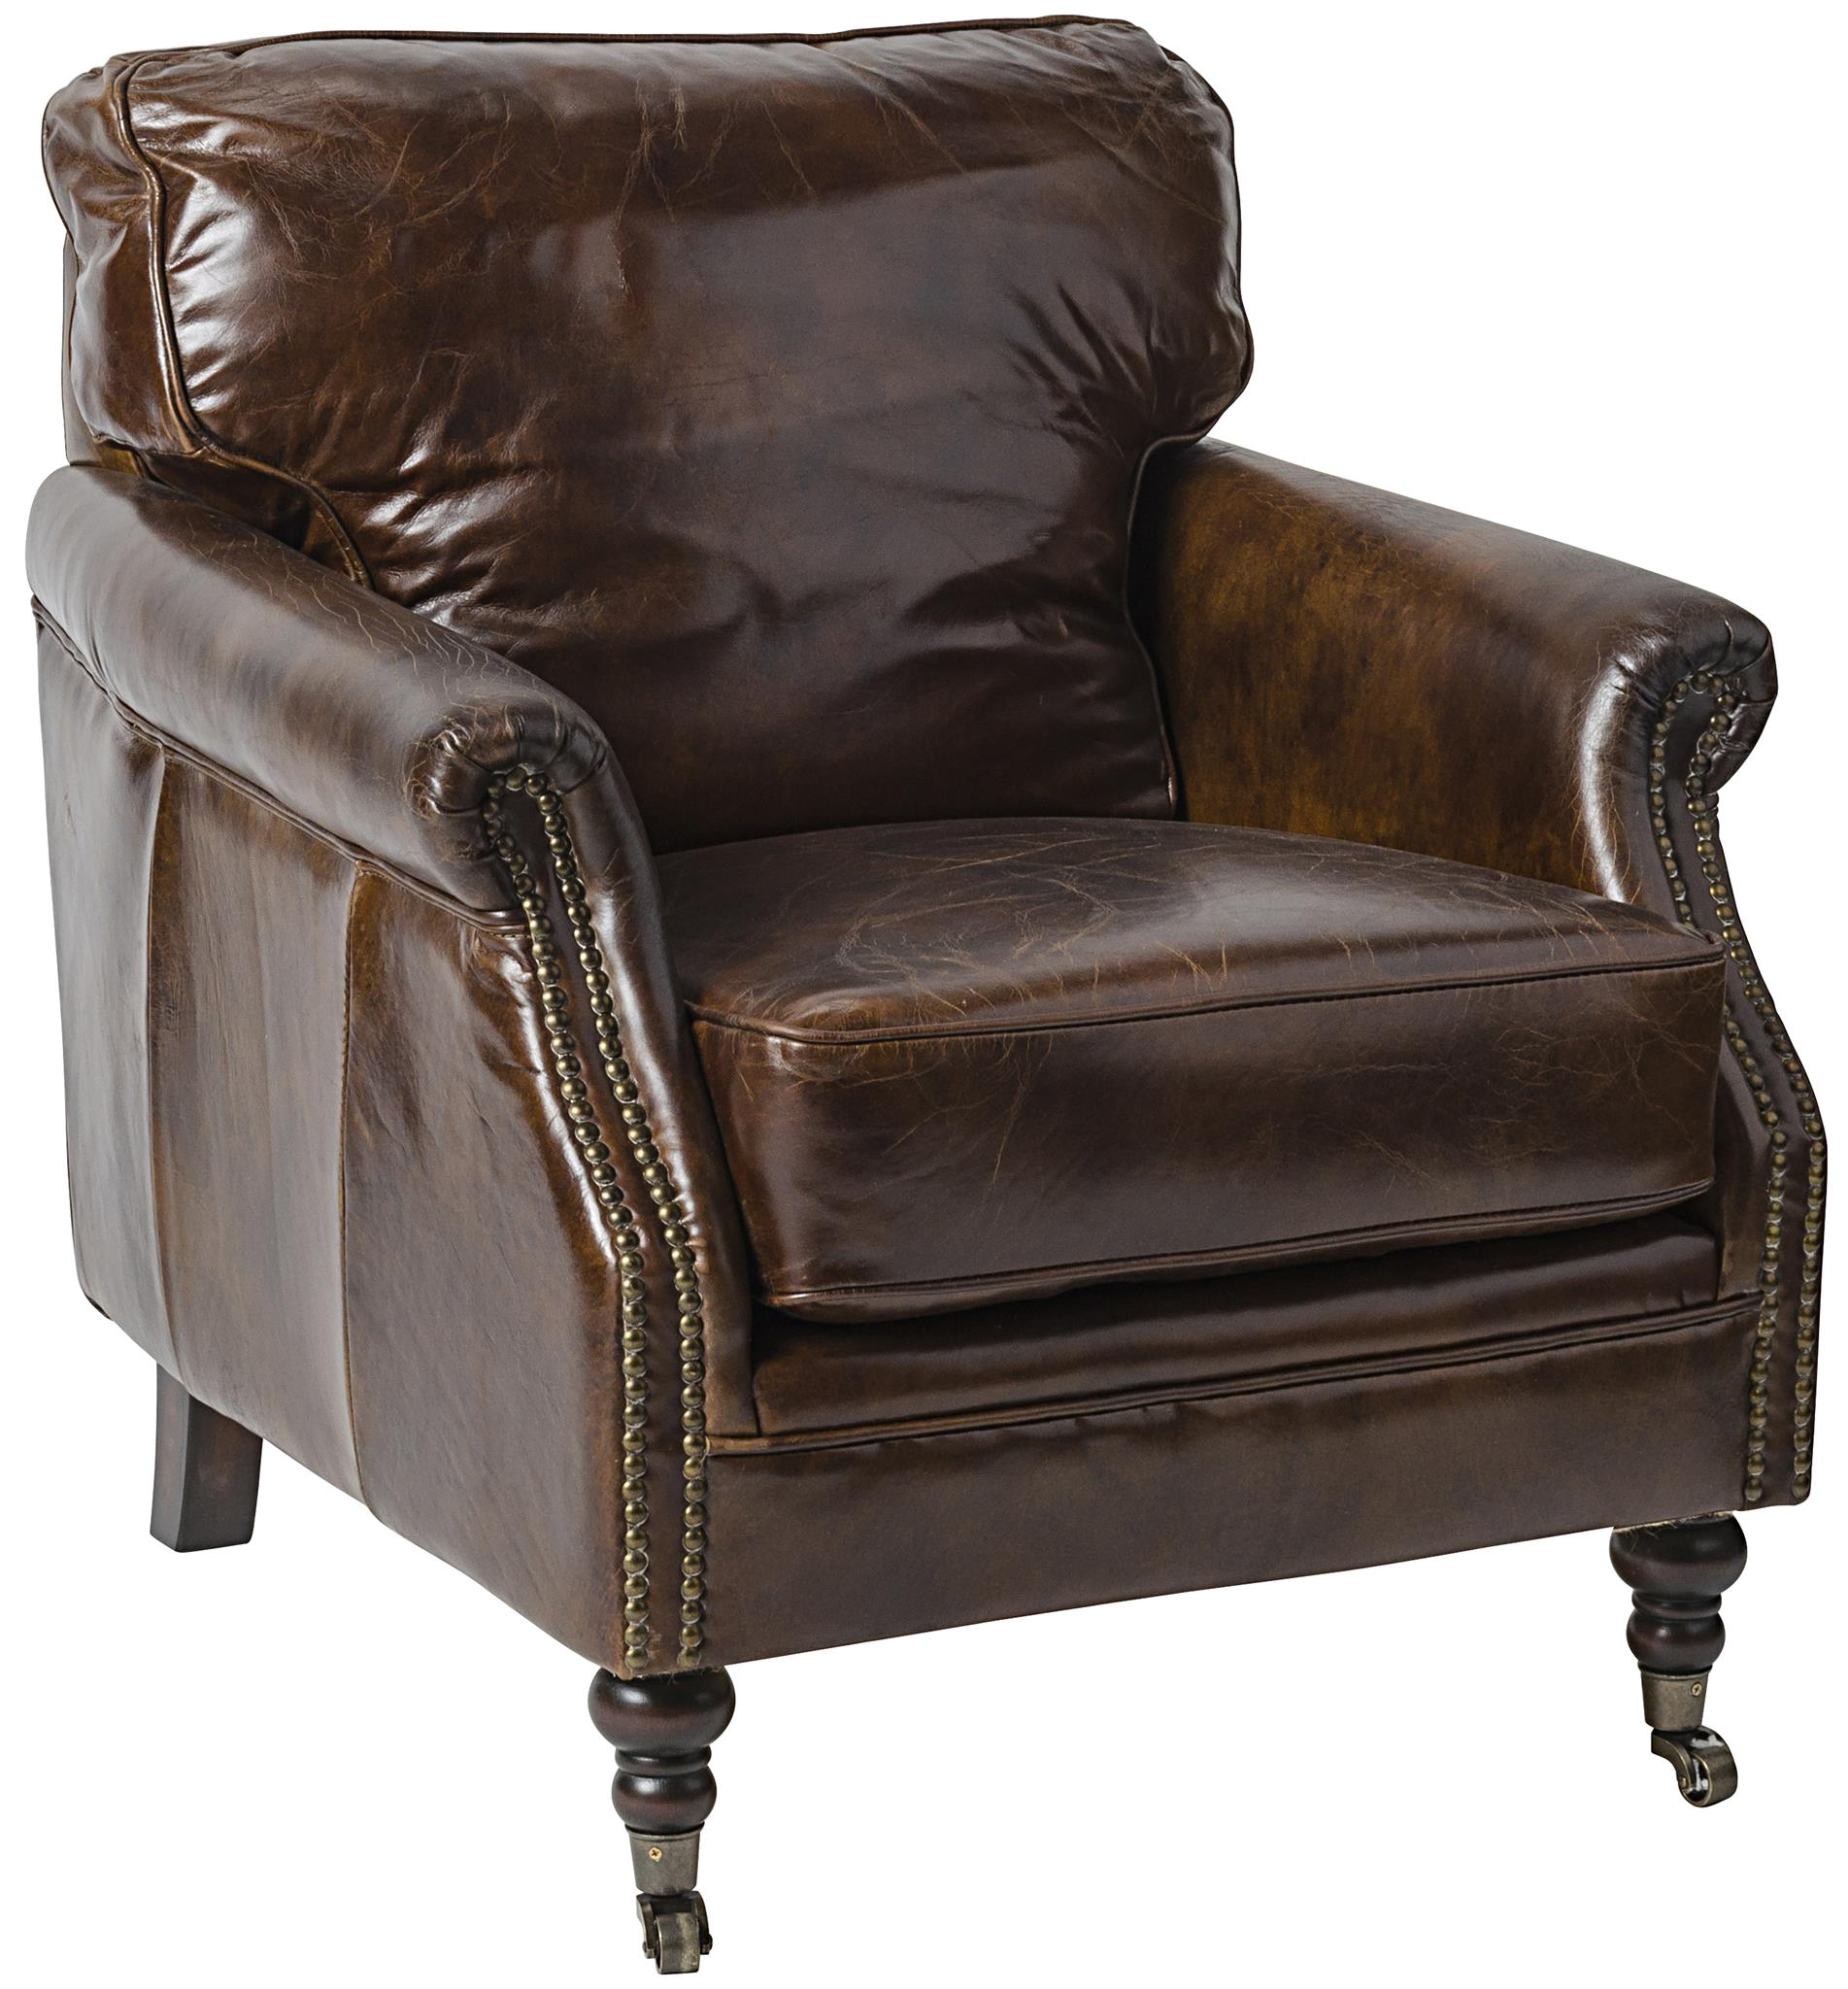 Strange 916 Club Chair Vintage Leather Sofas Pdpeps Interior Chair Design Pdpepsorg